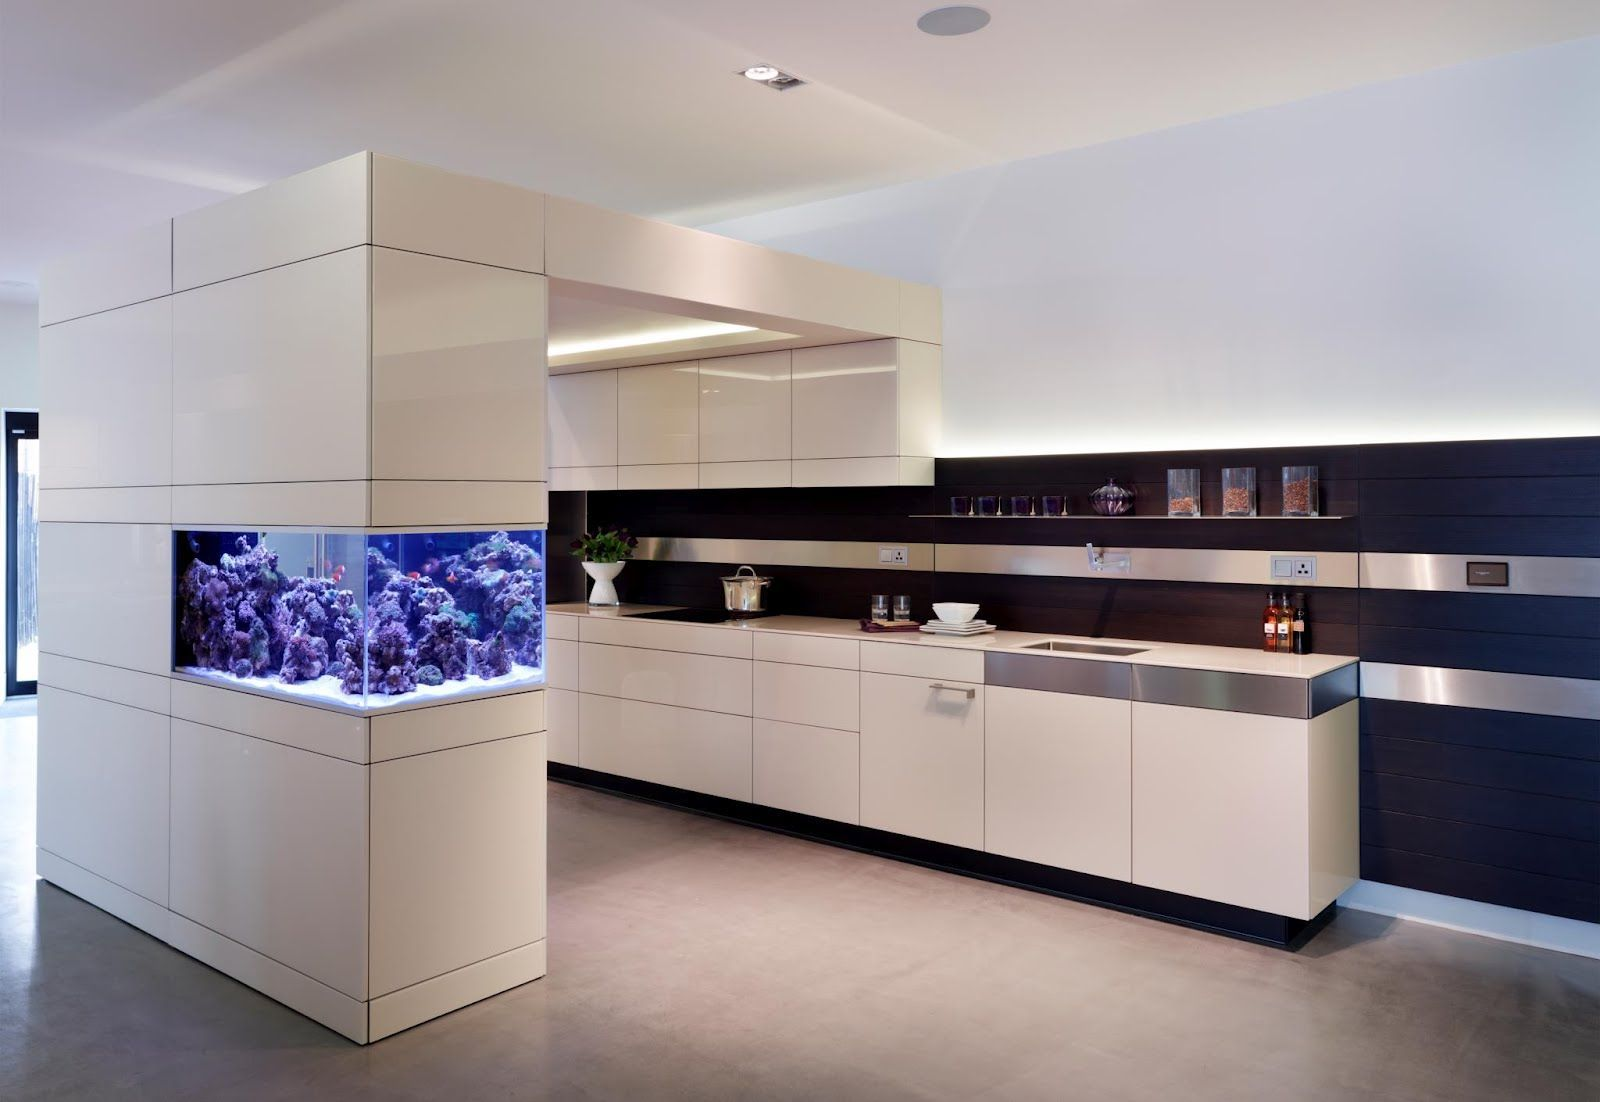 Fabulous Corner Wall Fish Tank Installed In White Divider Decorating